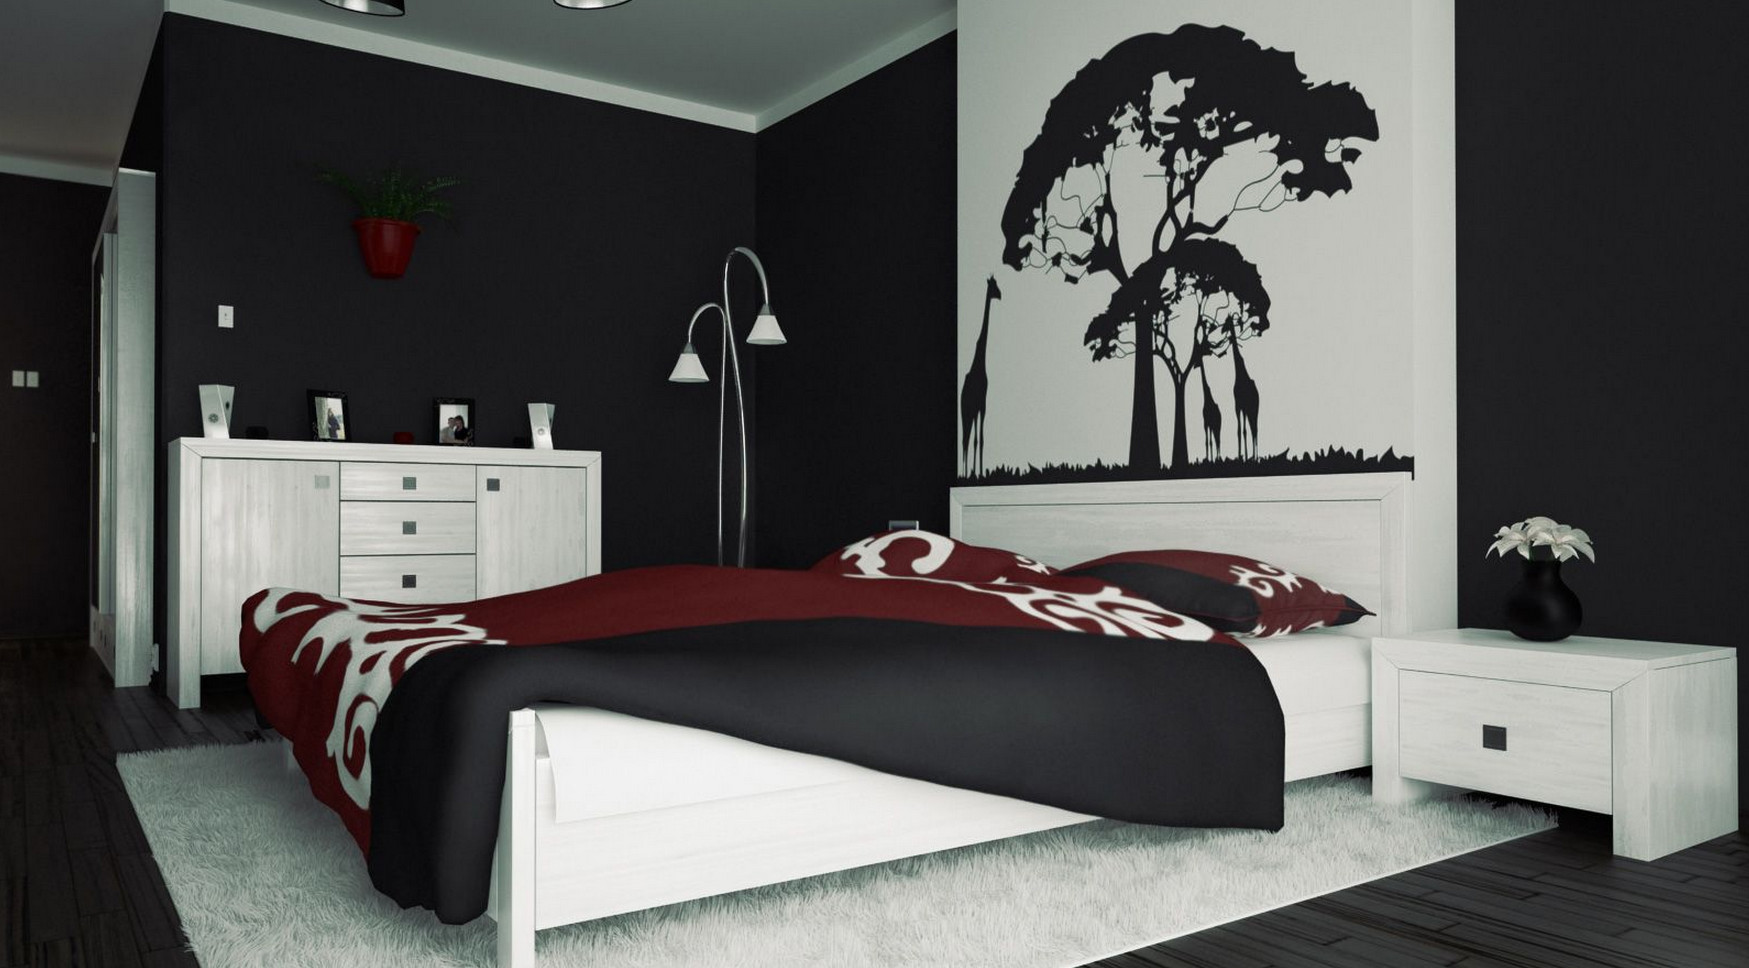 Exceptional Red Bedroom Wall Painting Ideas Part - 9: Red And Black Wall Painting